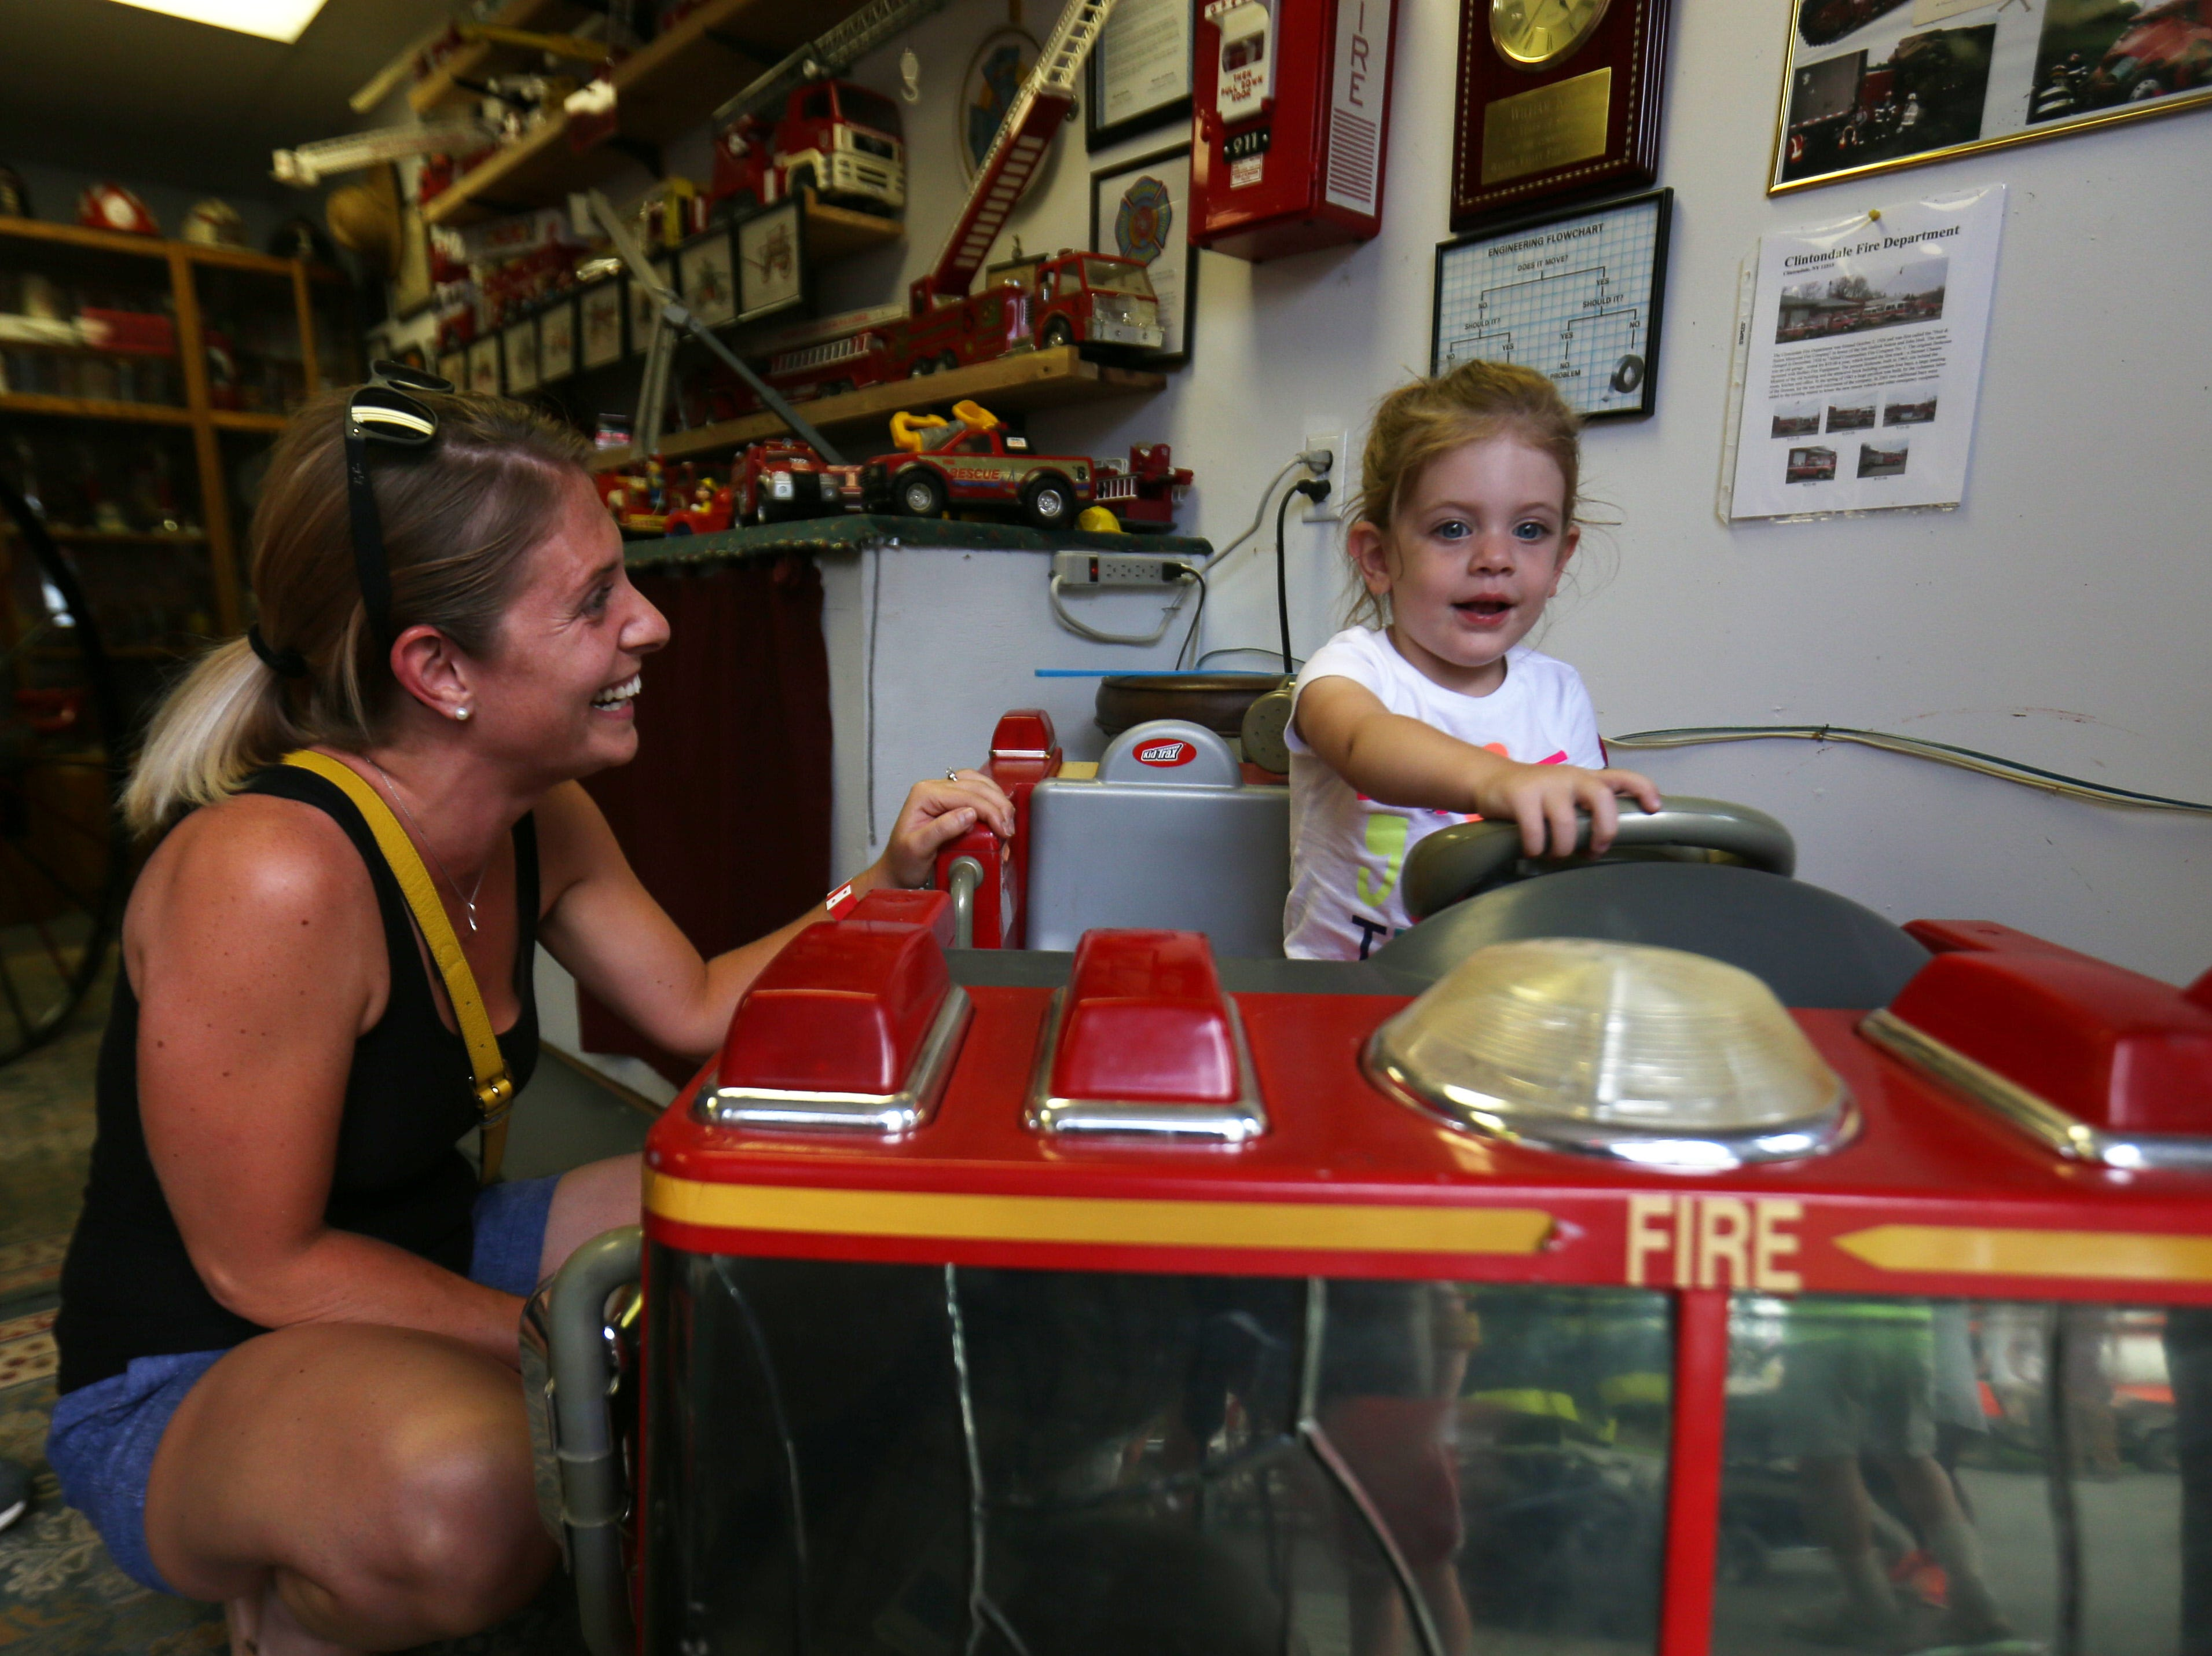 Amanda Albert of Newburgh watches her daughter, Lily, play on a toy fire truck in the fire department museum at the Ulster County Fair in New Paltz on July 31, 2018.